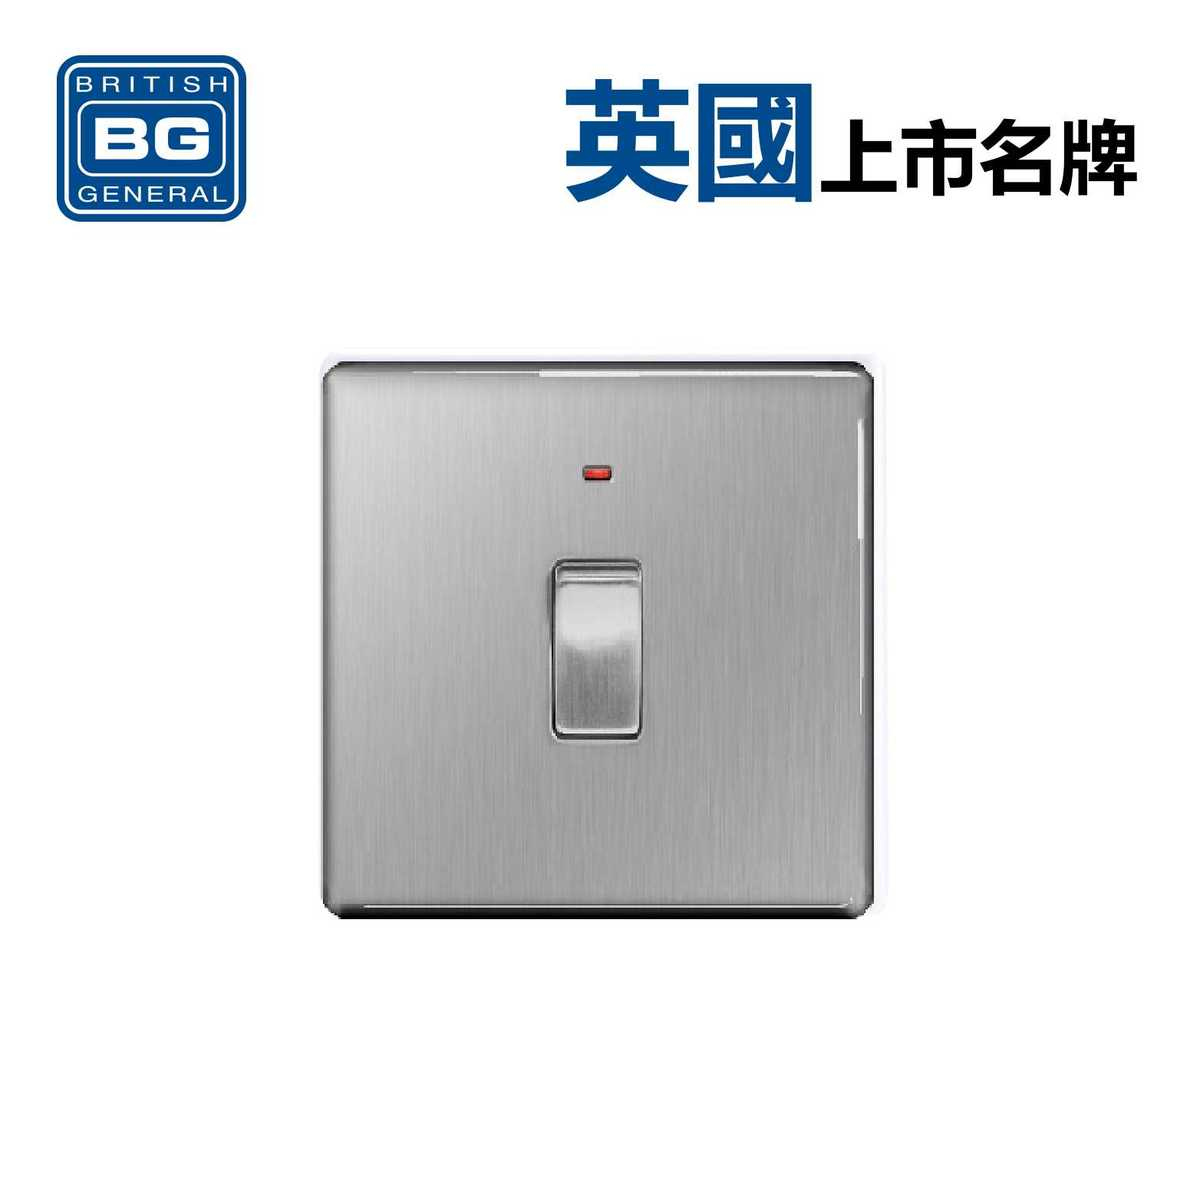 20A Double Pole Switch with LED -Flatplate Brushed Steel (Model: FBS31)